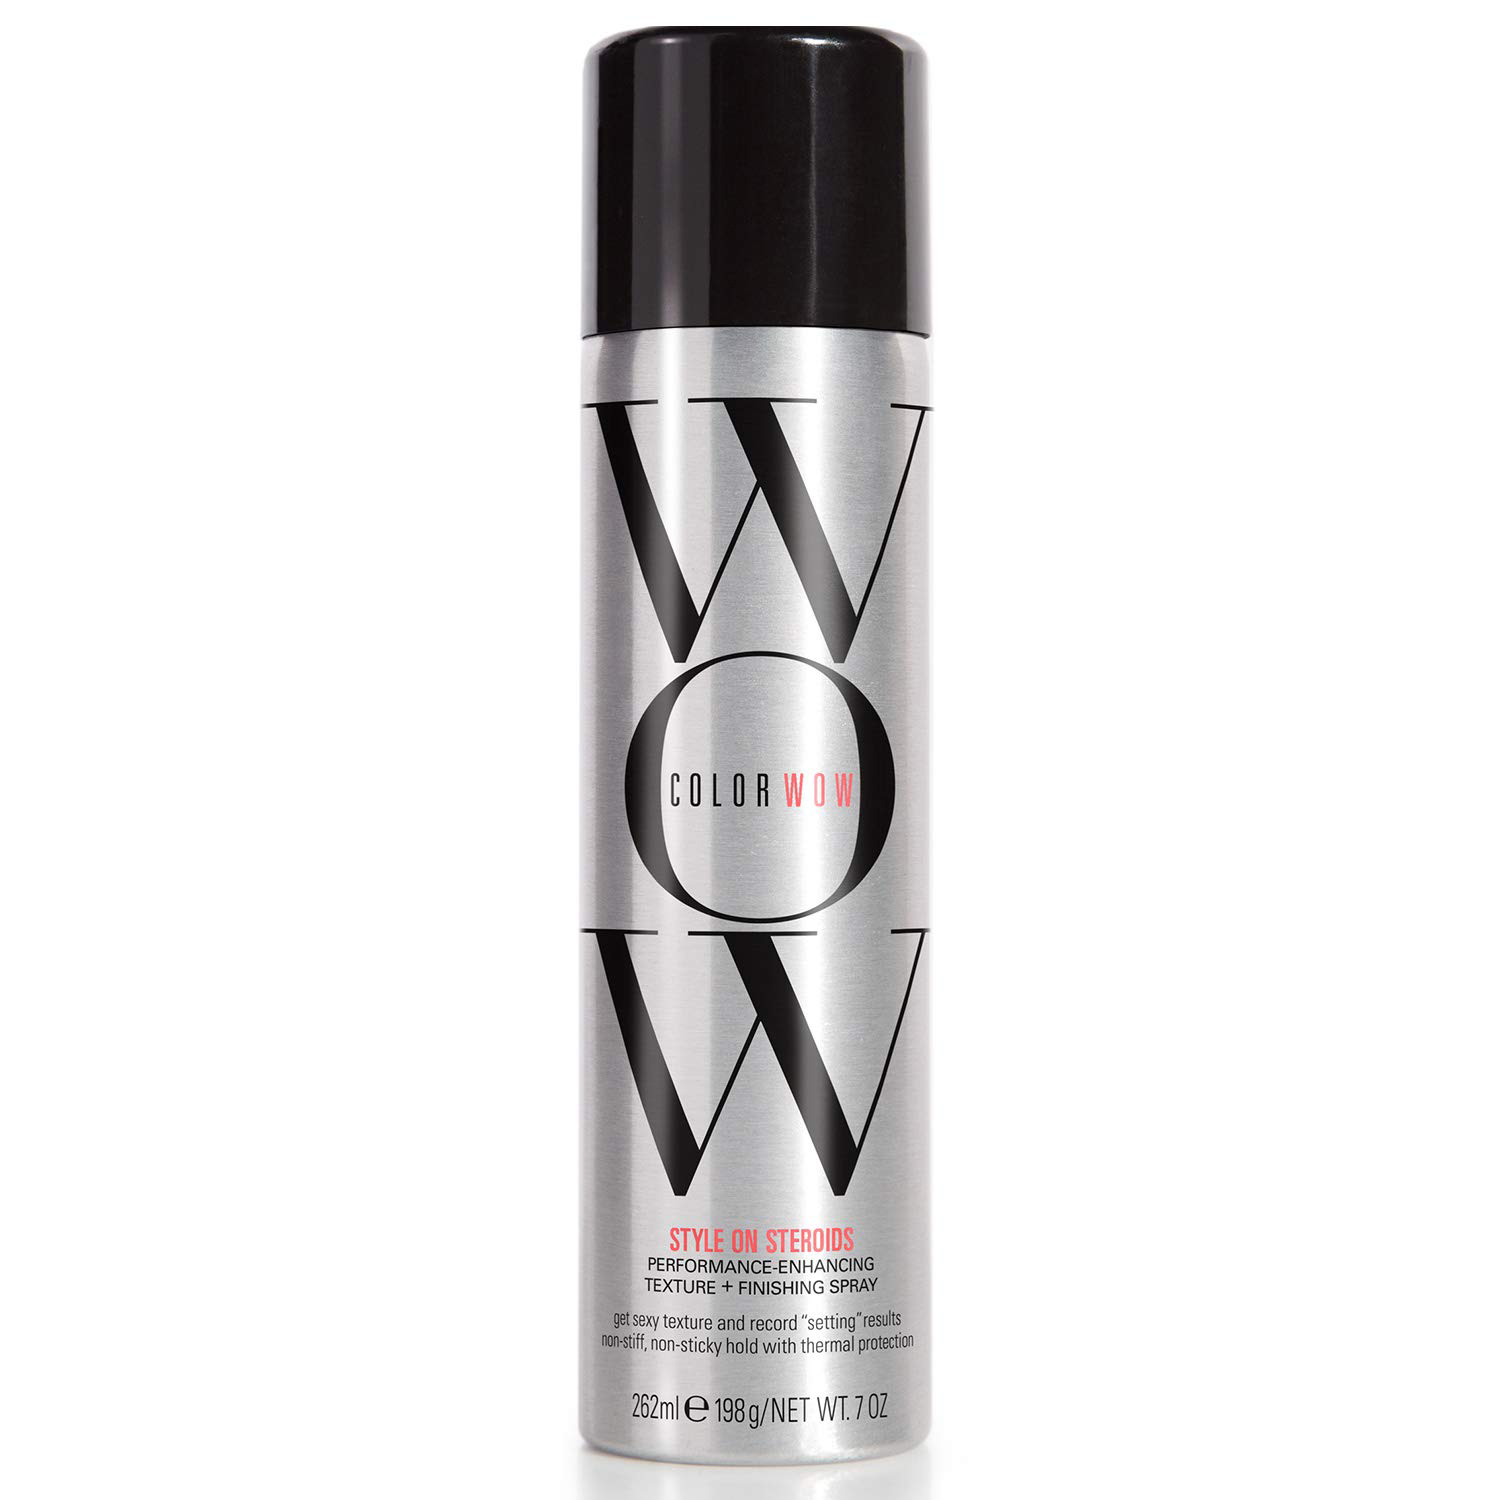 COLOR WOW Hair Products on Amazon